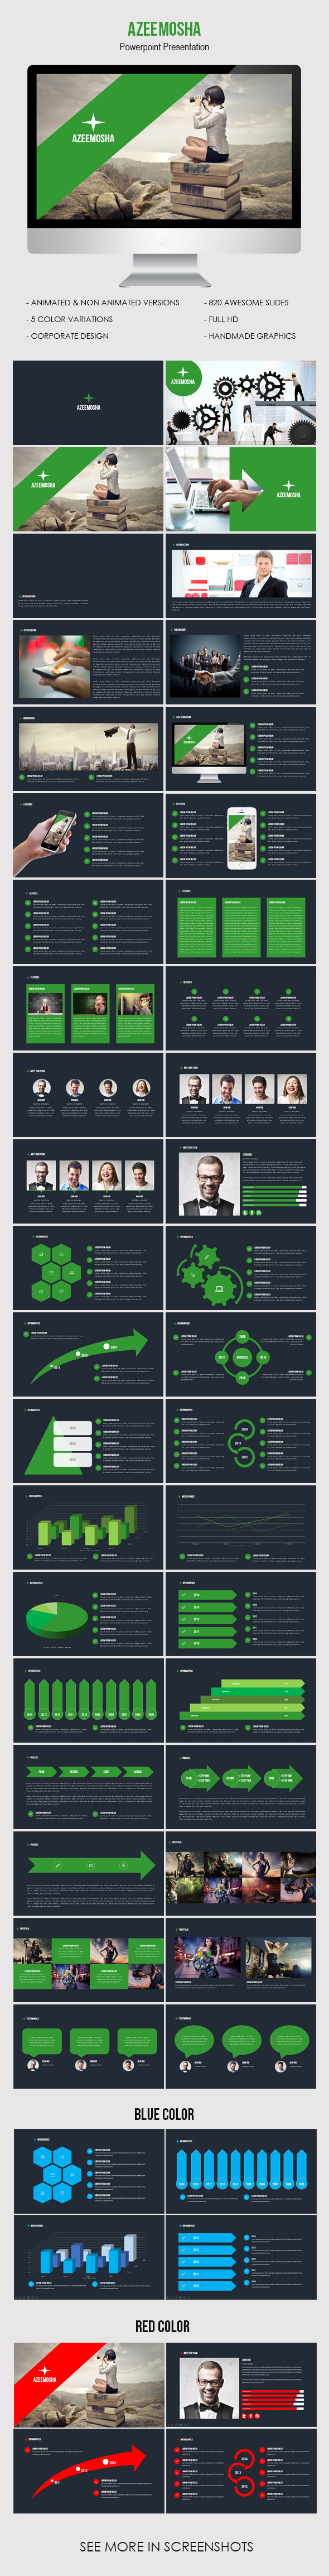 GraphicRiver Azeemosha Powerpoint Presentation Template 9807078